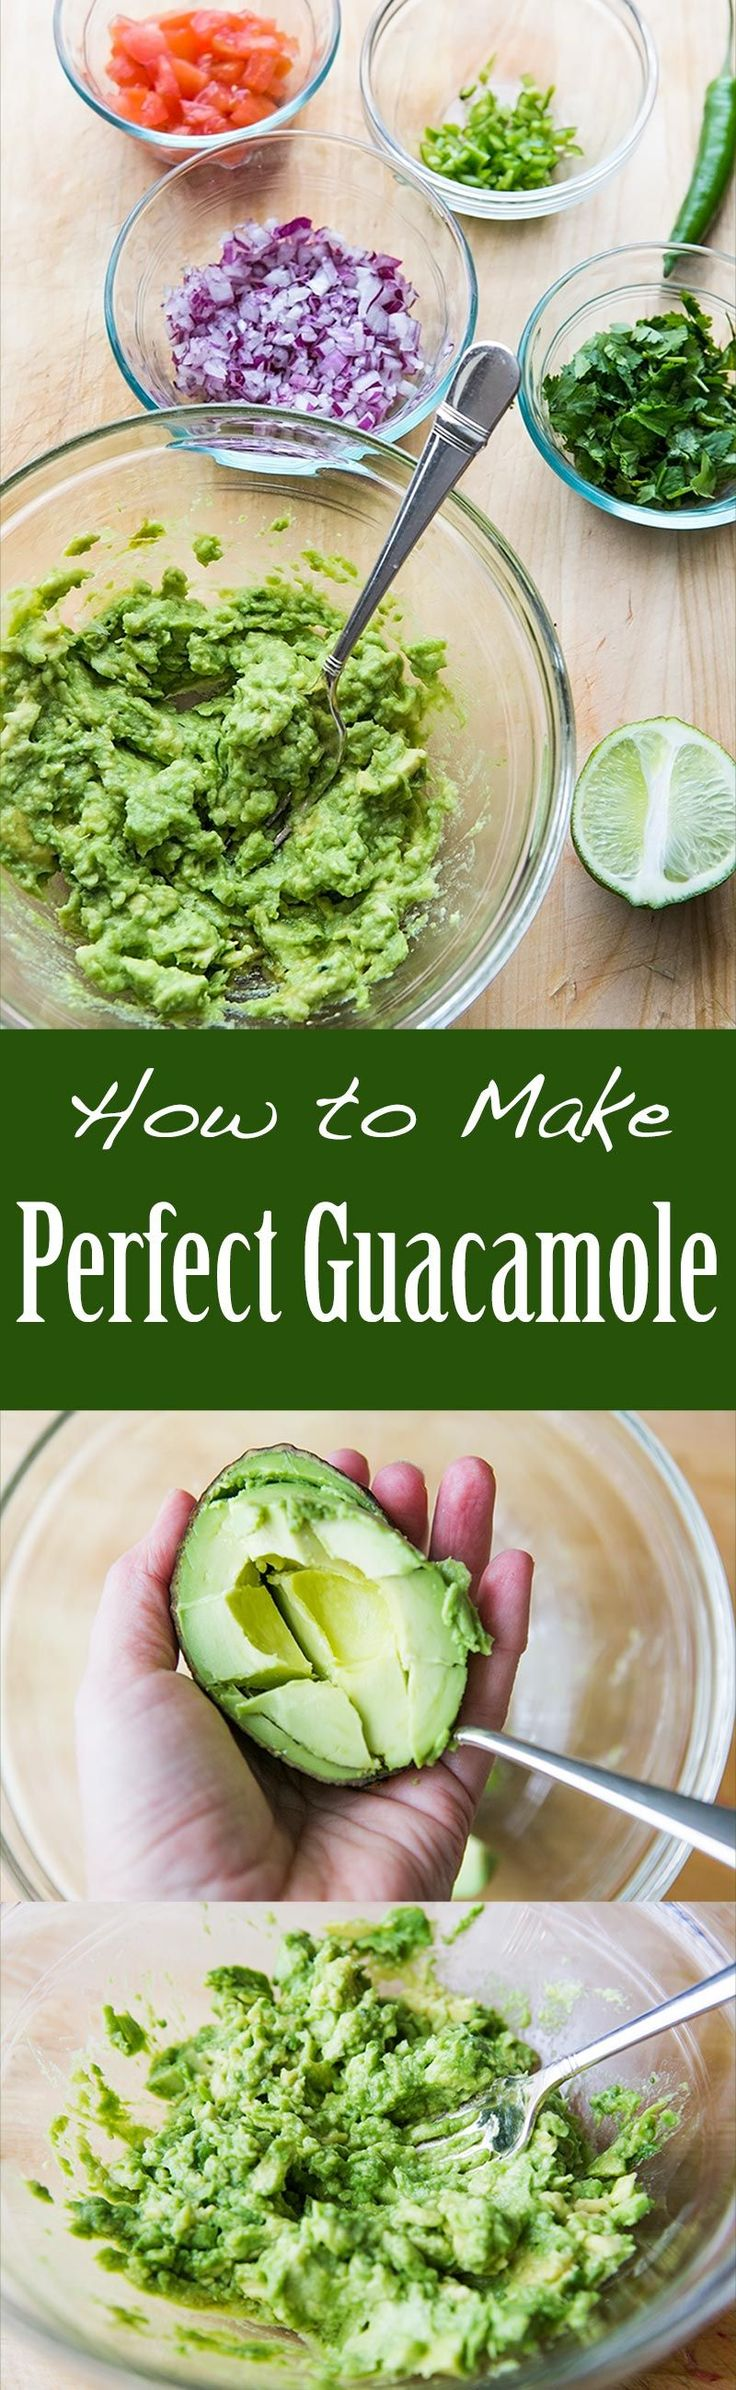 The BEST guacamole! So EASY to make with ripe avocados, salt, serrano chiles, cilantro and lime. On SimplyRecipes.com